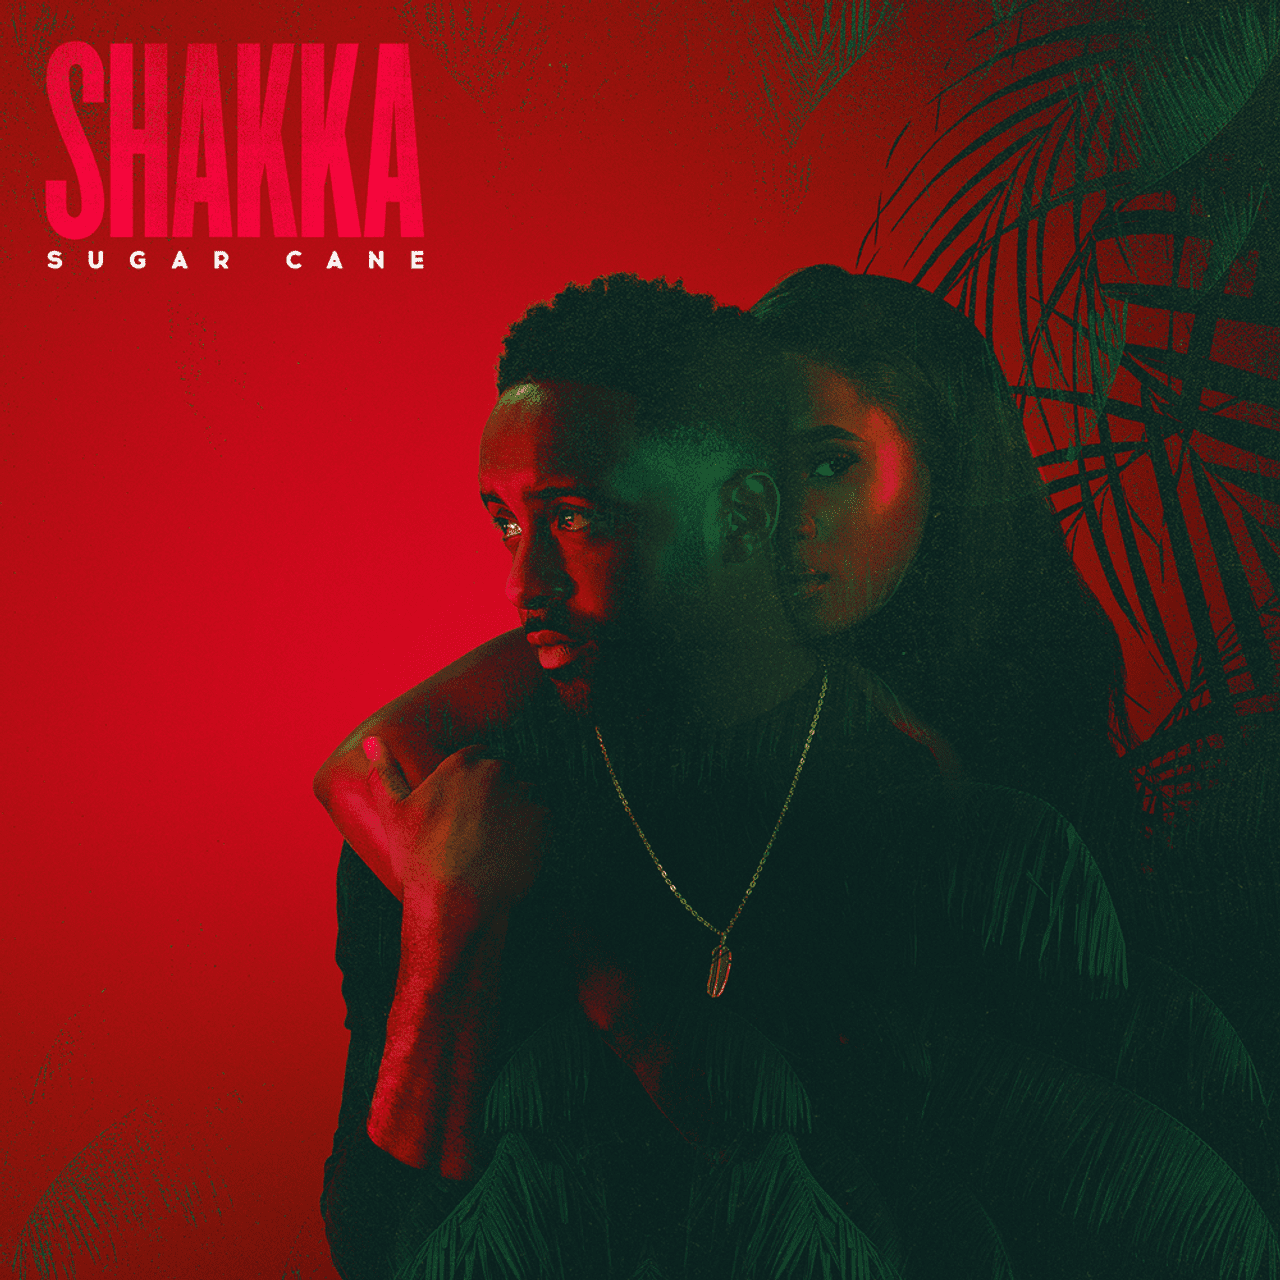 We supplied featured models for Shakka's video Sugar Cane